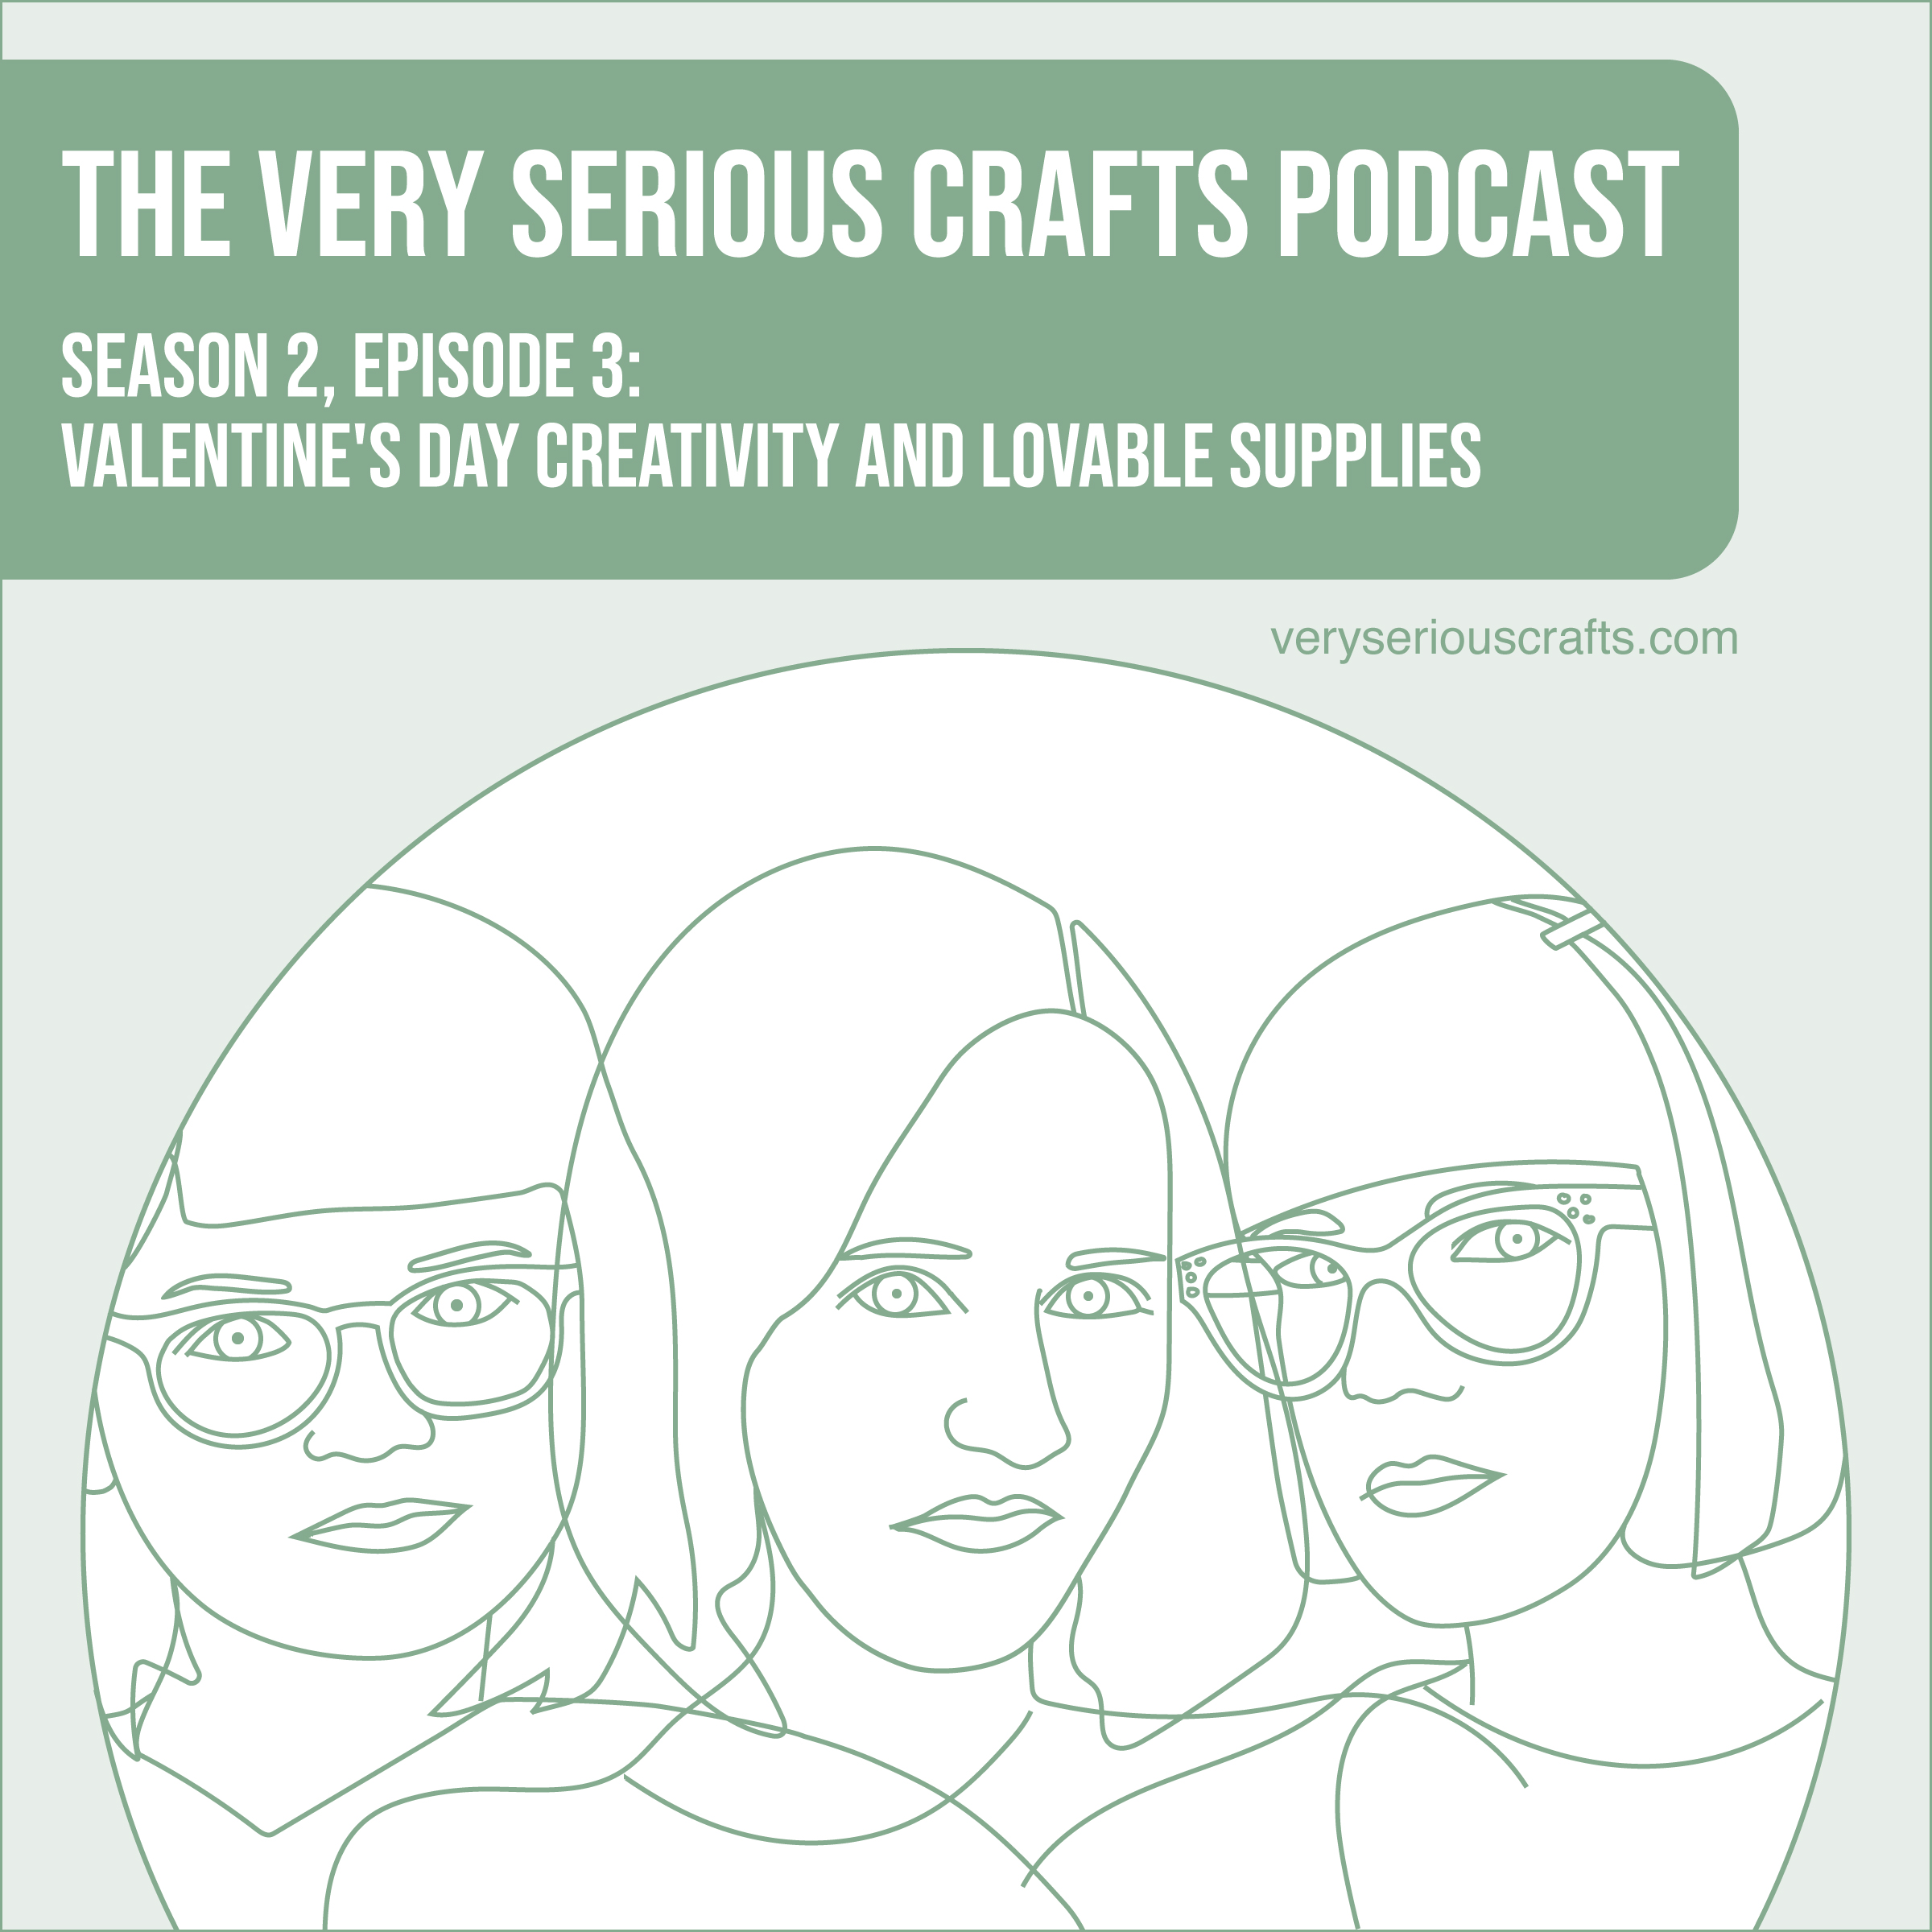 S2E03: Valentine's Day Creativity and Lovable Supplies